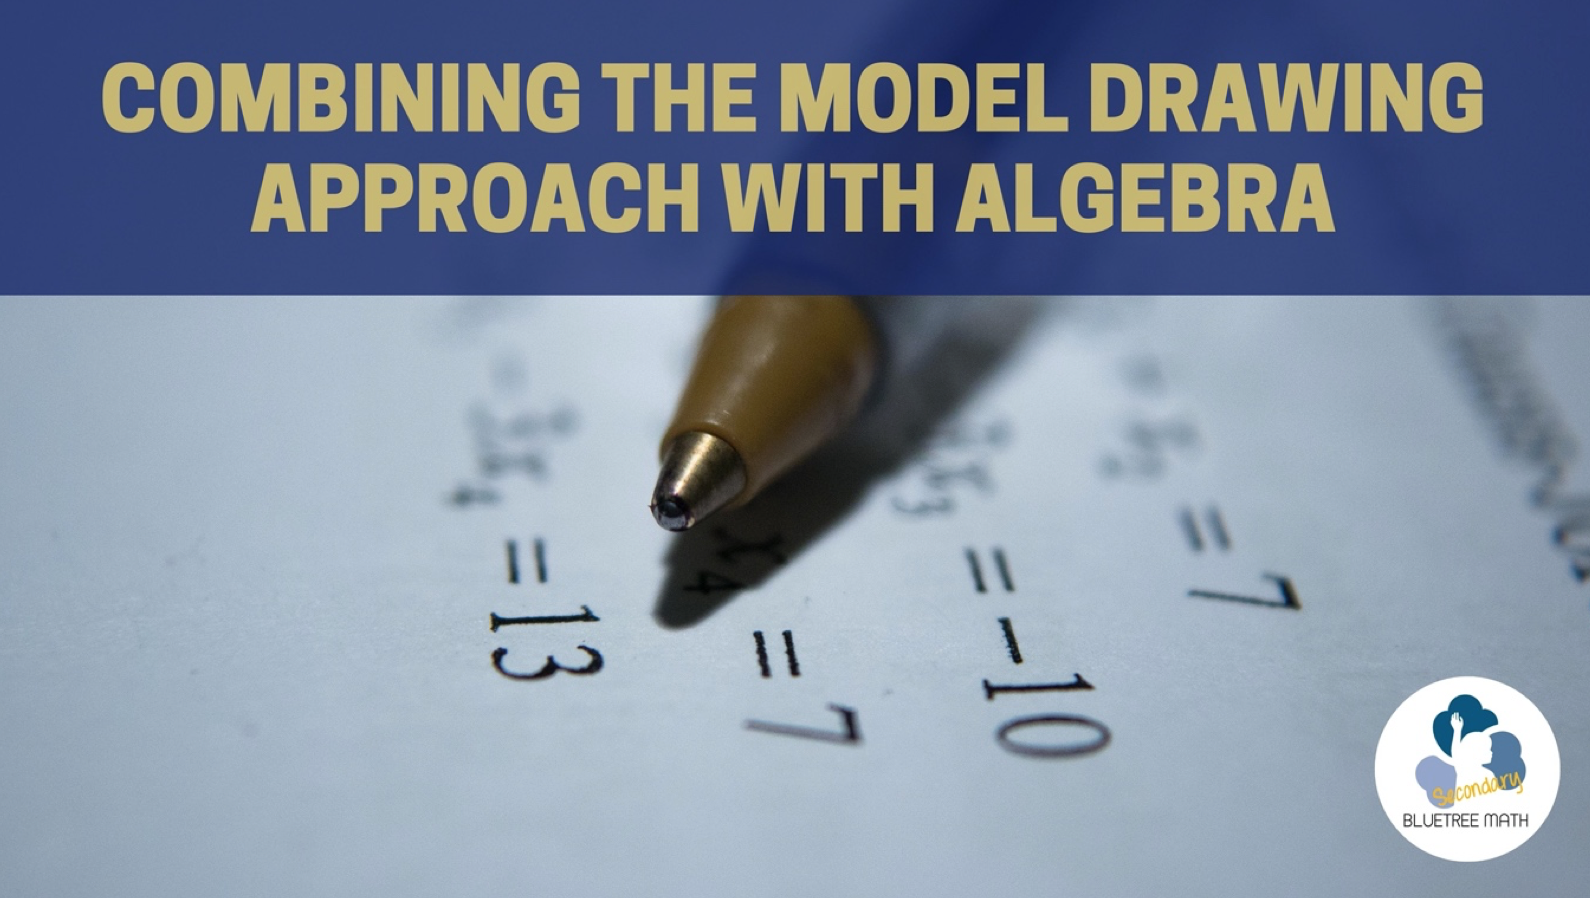 Combining the Model Drawing Approach with Algebra